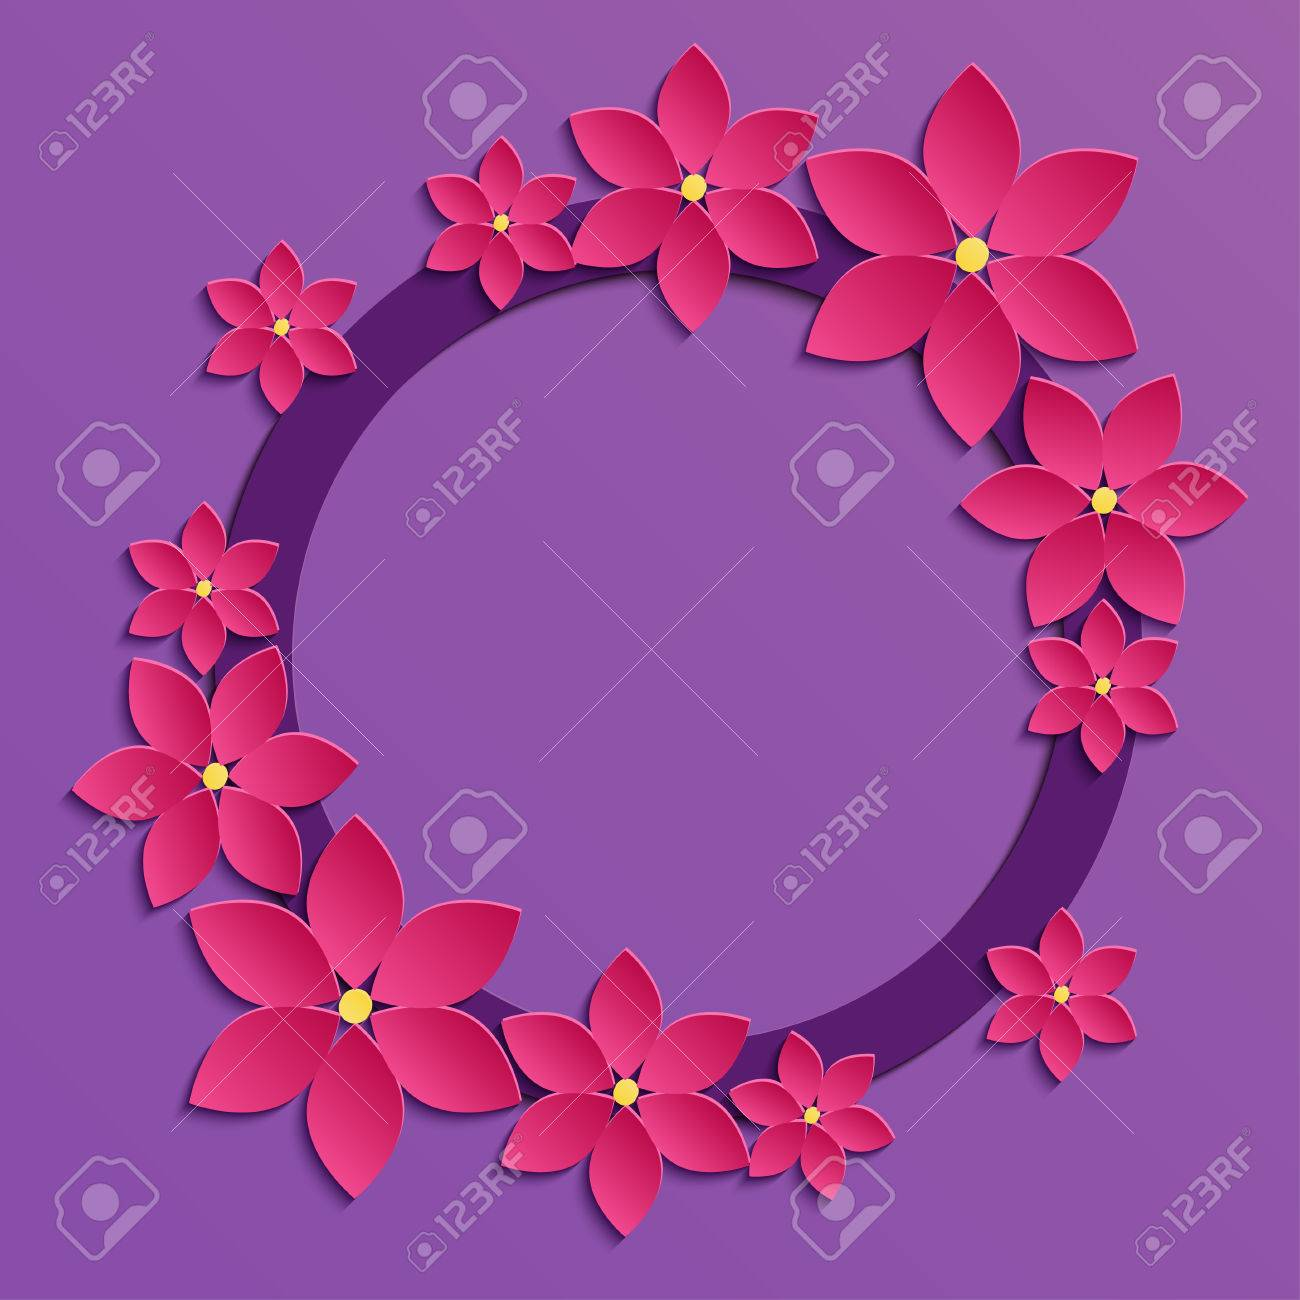 Decorative Violet Paper Cut Border With Pink Paper Flowers 3d